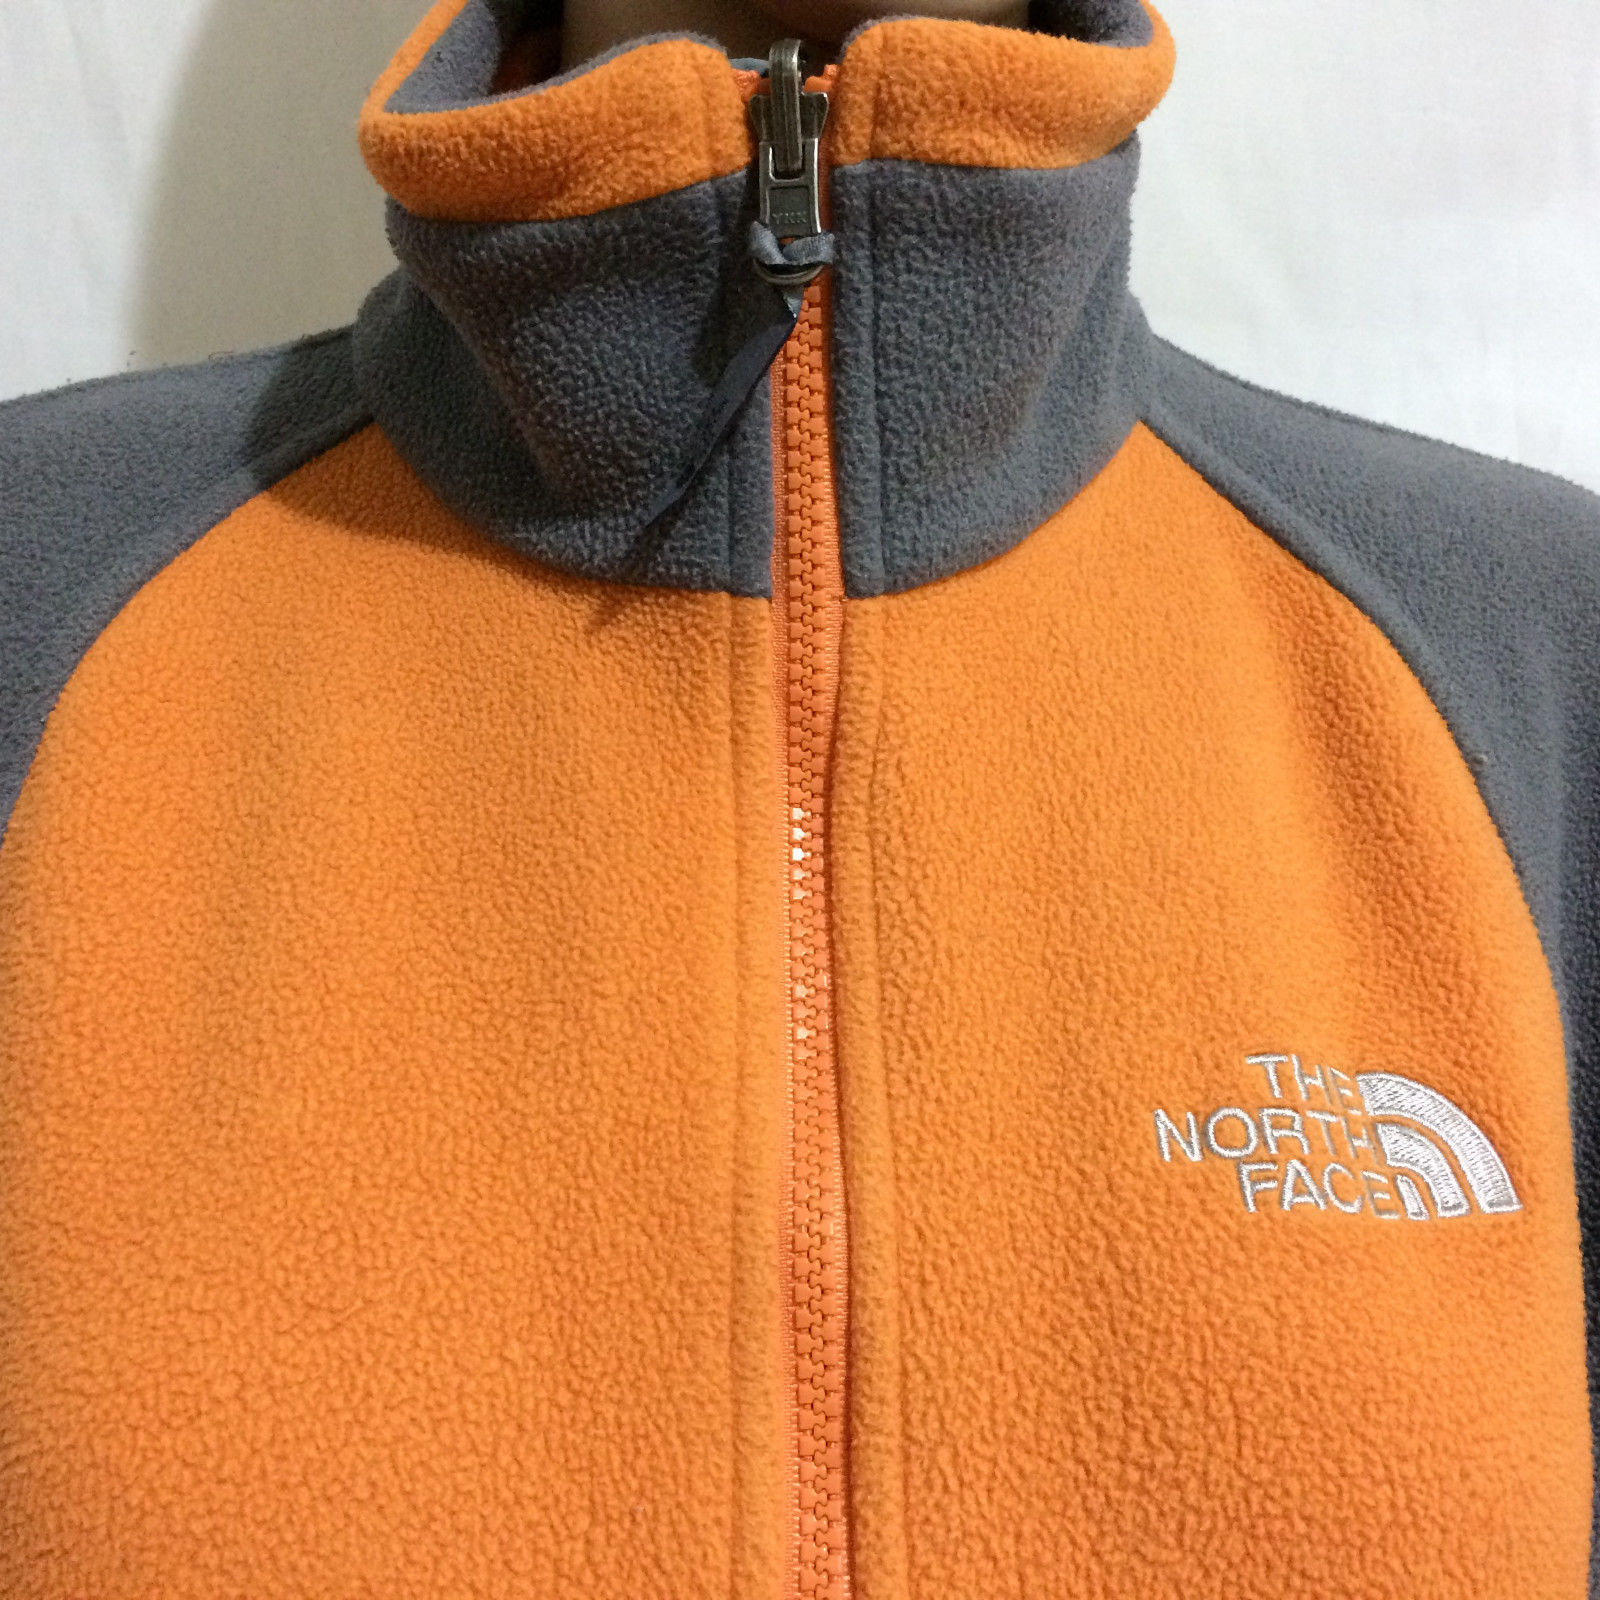 0e153edcc9 The North Face Fleece Jacket Size M Women and 50 similar items. S l1600